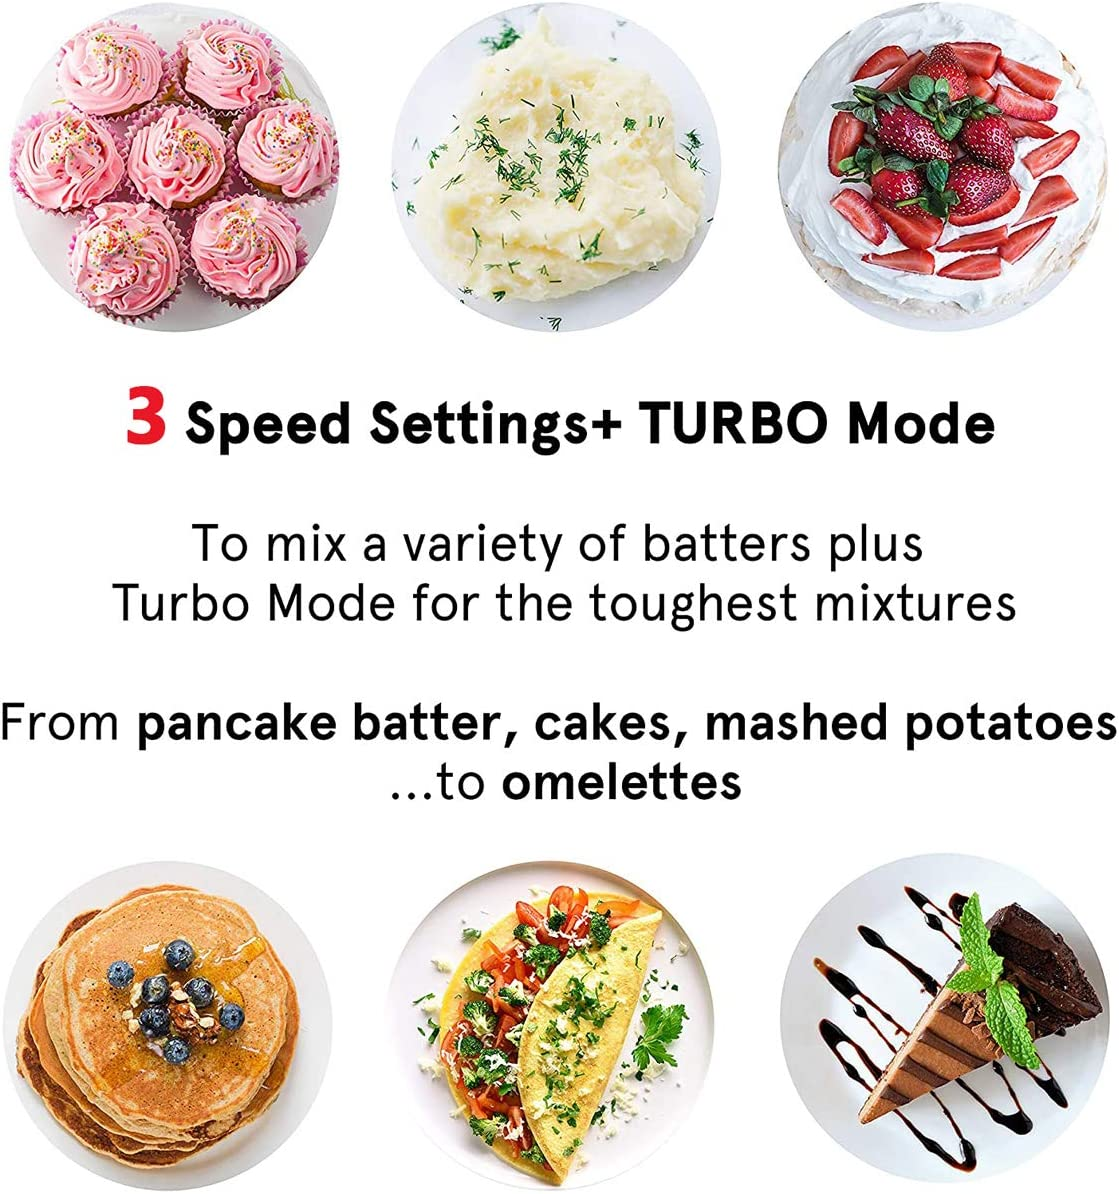 Cord /& Attachments Storage Function 4 Accessories and Easy Eject for Whipping Mixing Cookies MOSAIC 3 Speed Electric Hand-held Mixer with Turbo Hand Mixer Dough Brownies Cakes